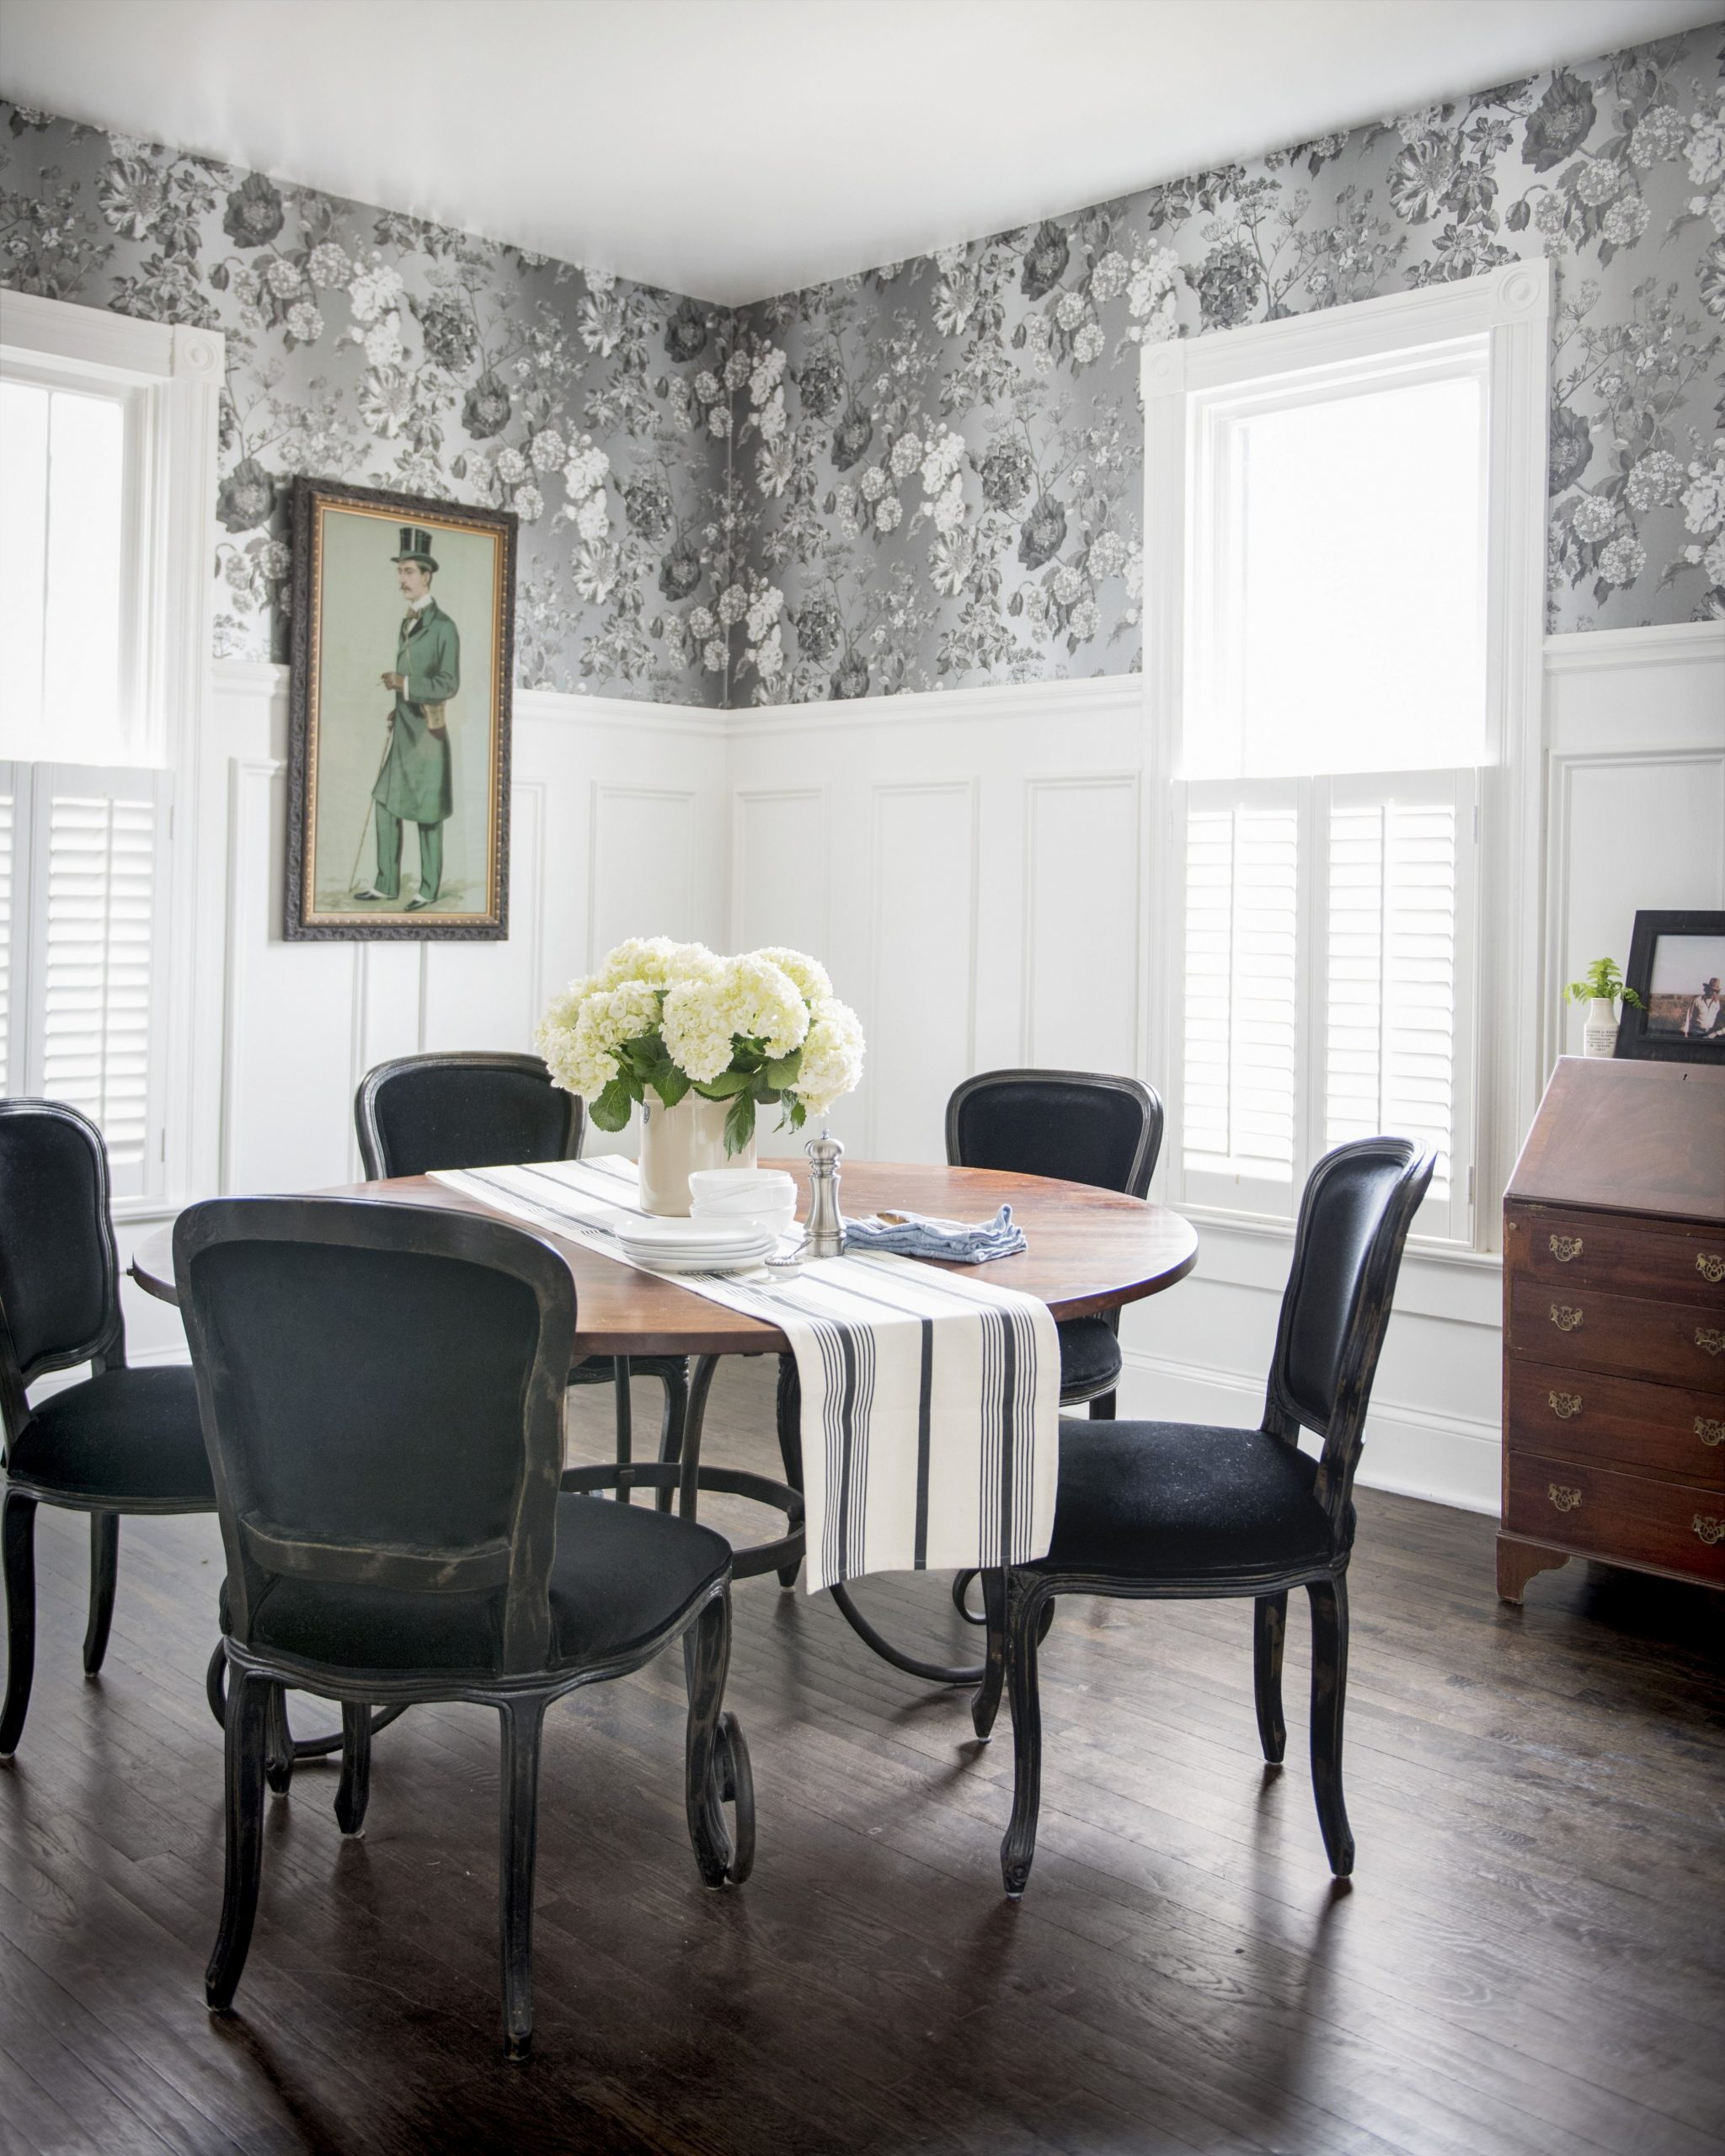 9 Best Dining Room Decorating Ideas - Pictures of Dining Room Decor - Dining Room Area Ideas